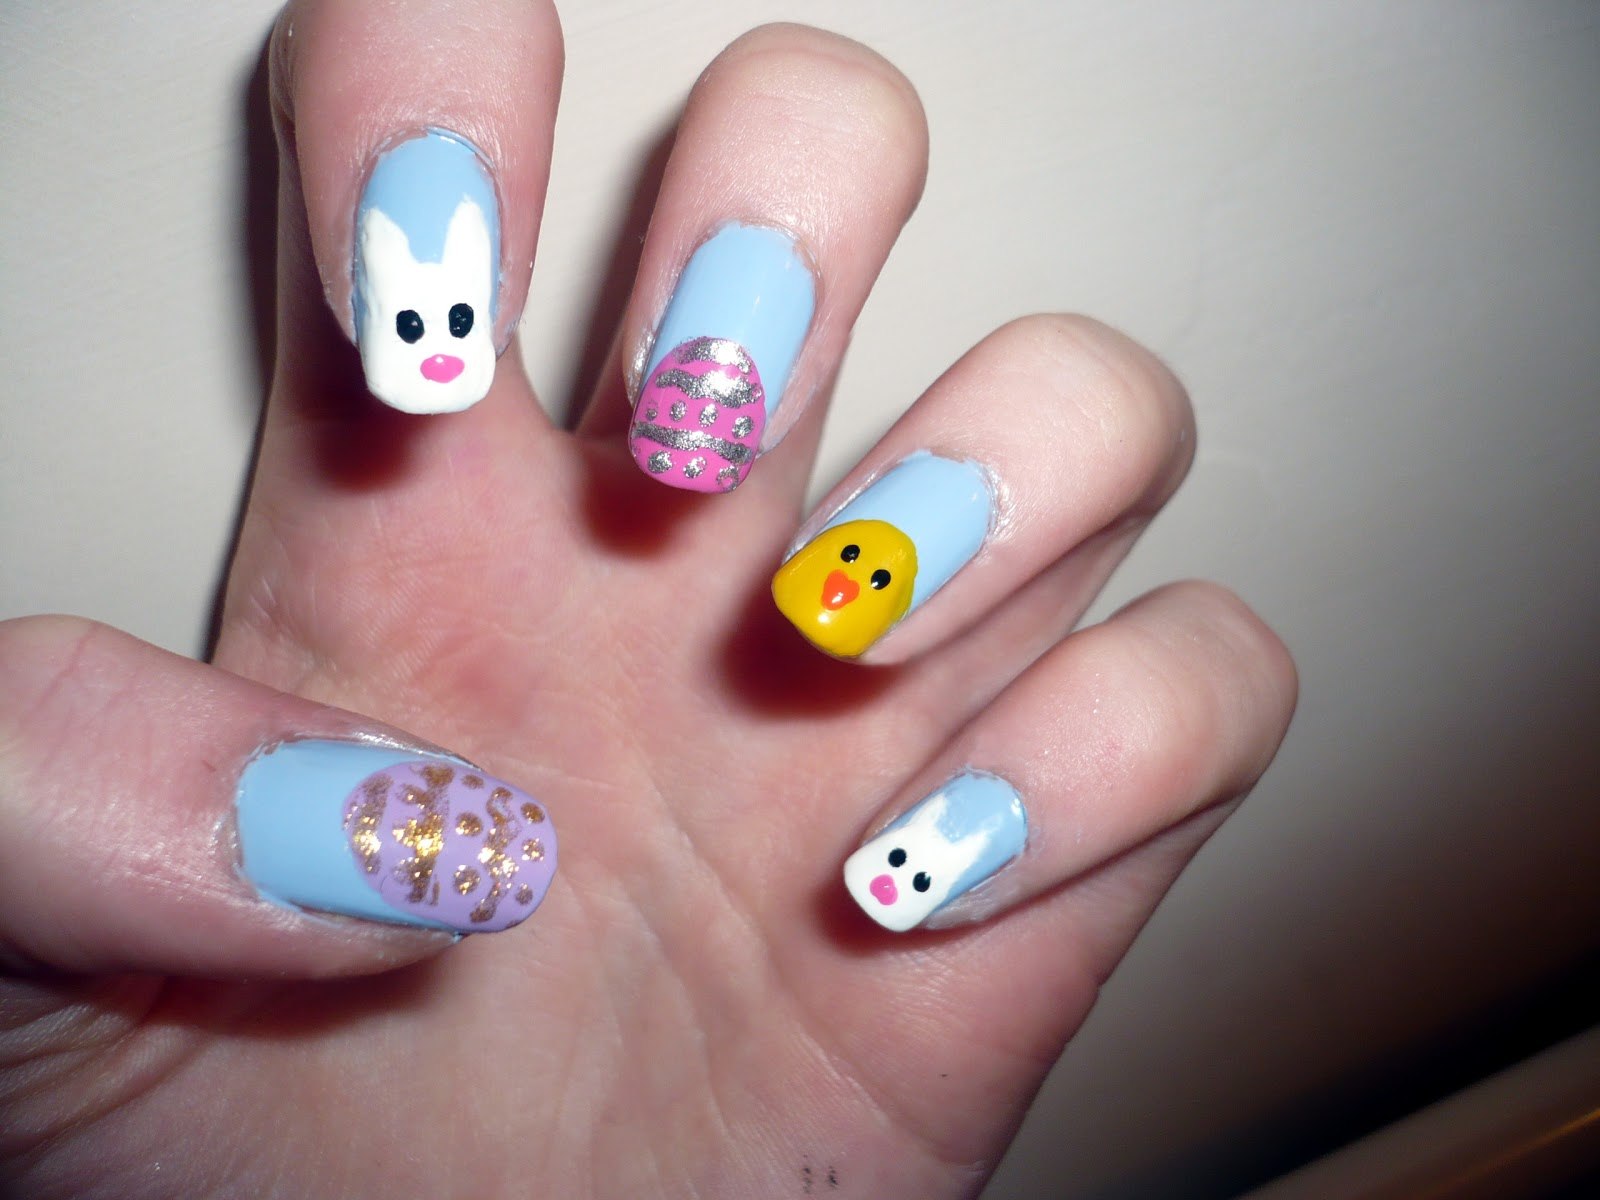 Louise Fashion | a fashion, style and beauty blog: Easter nail art